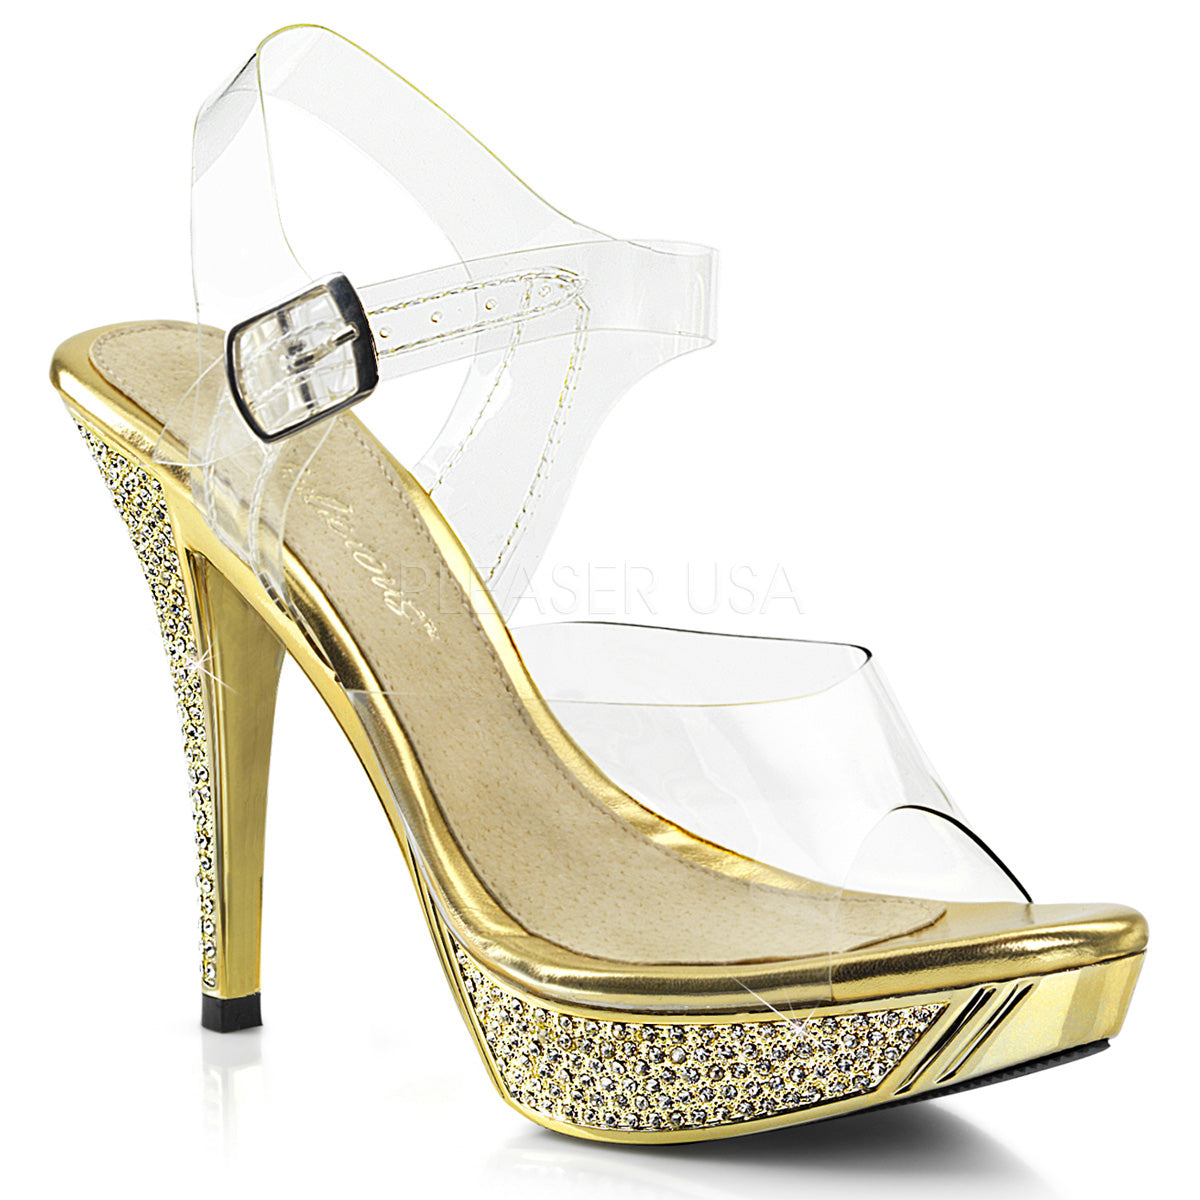 "4"" Heel ELEGANT-408 Gold Chrome"